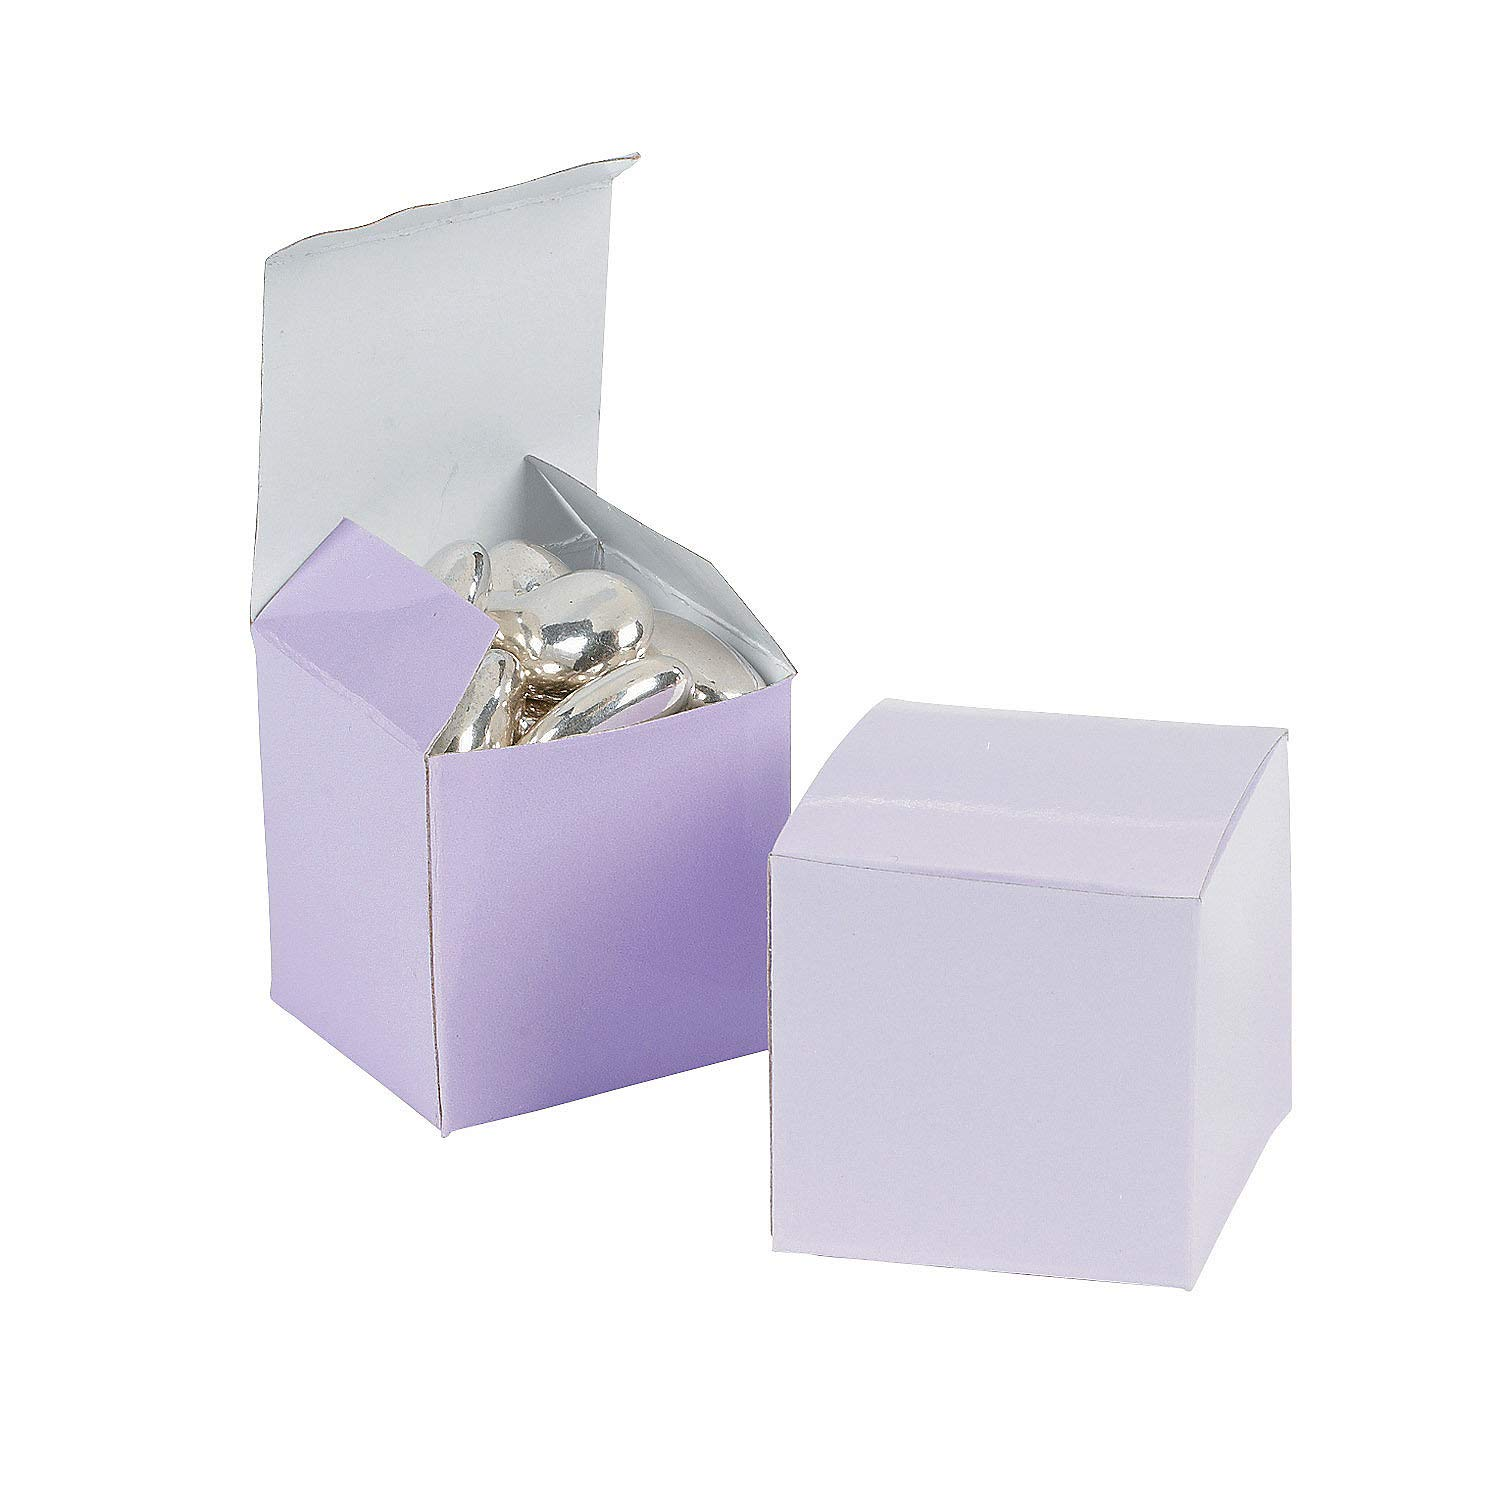 Wedding Containers /& Boxes 24pc Paper Boxes 2 Lilac Gift Boxes for Wedding Fun Express Party Supplies 24 Pieces